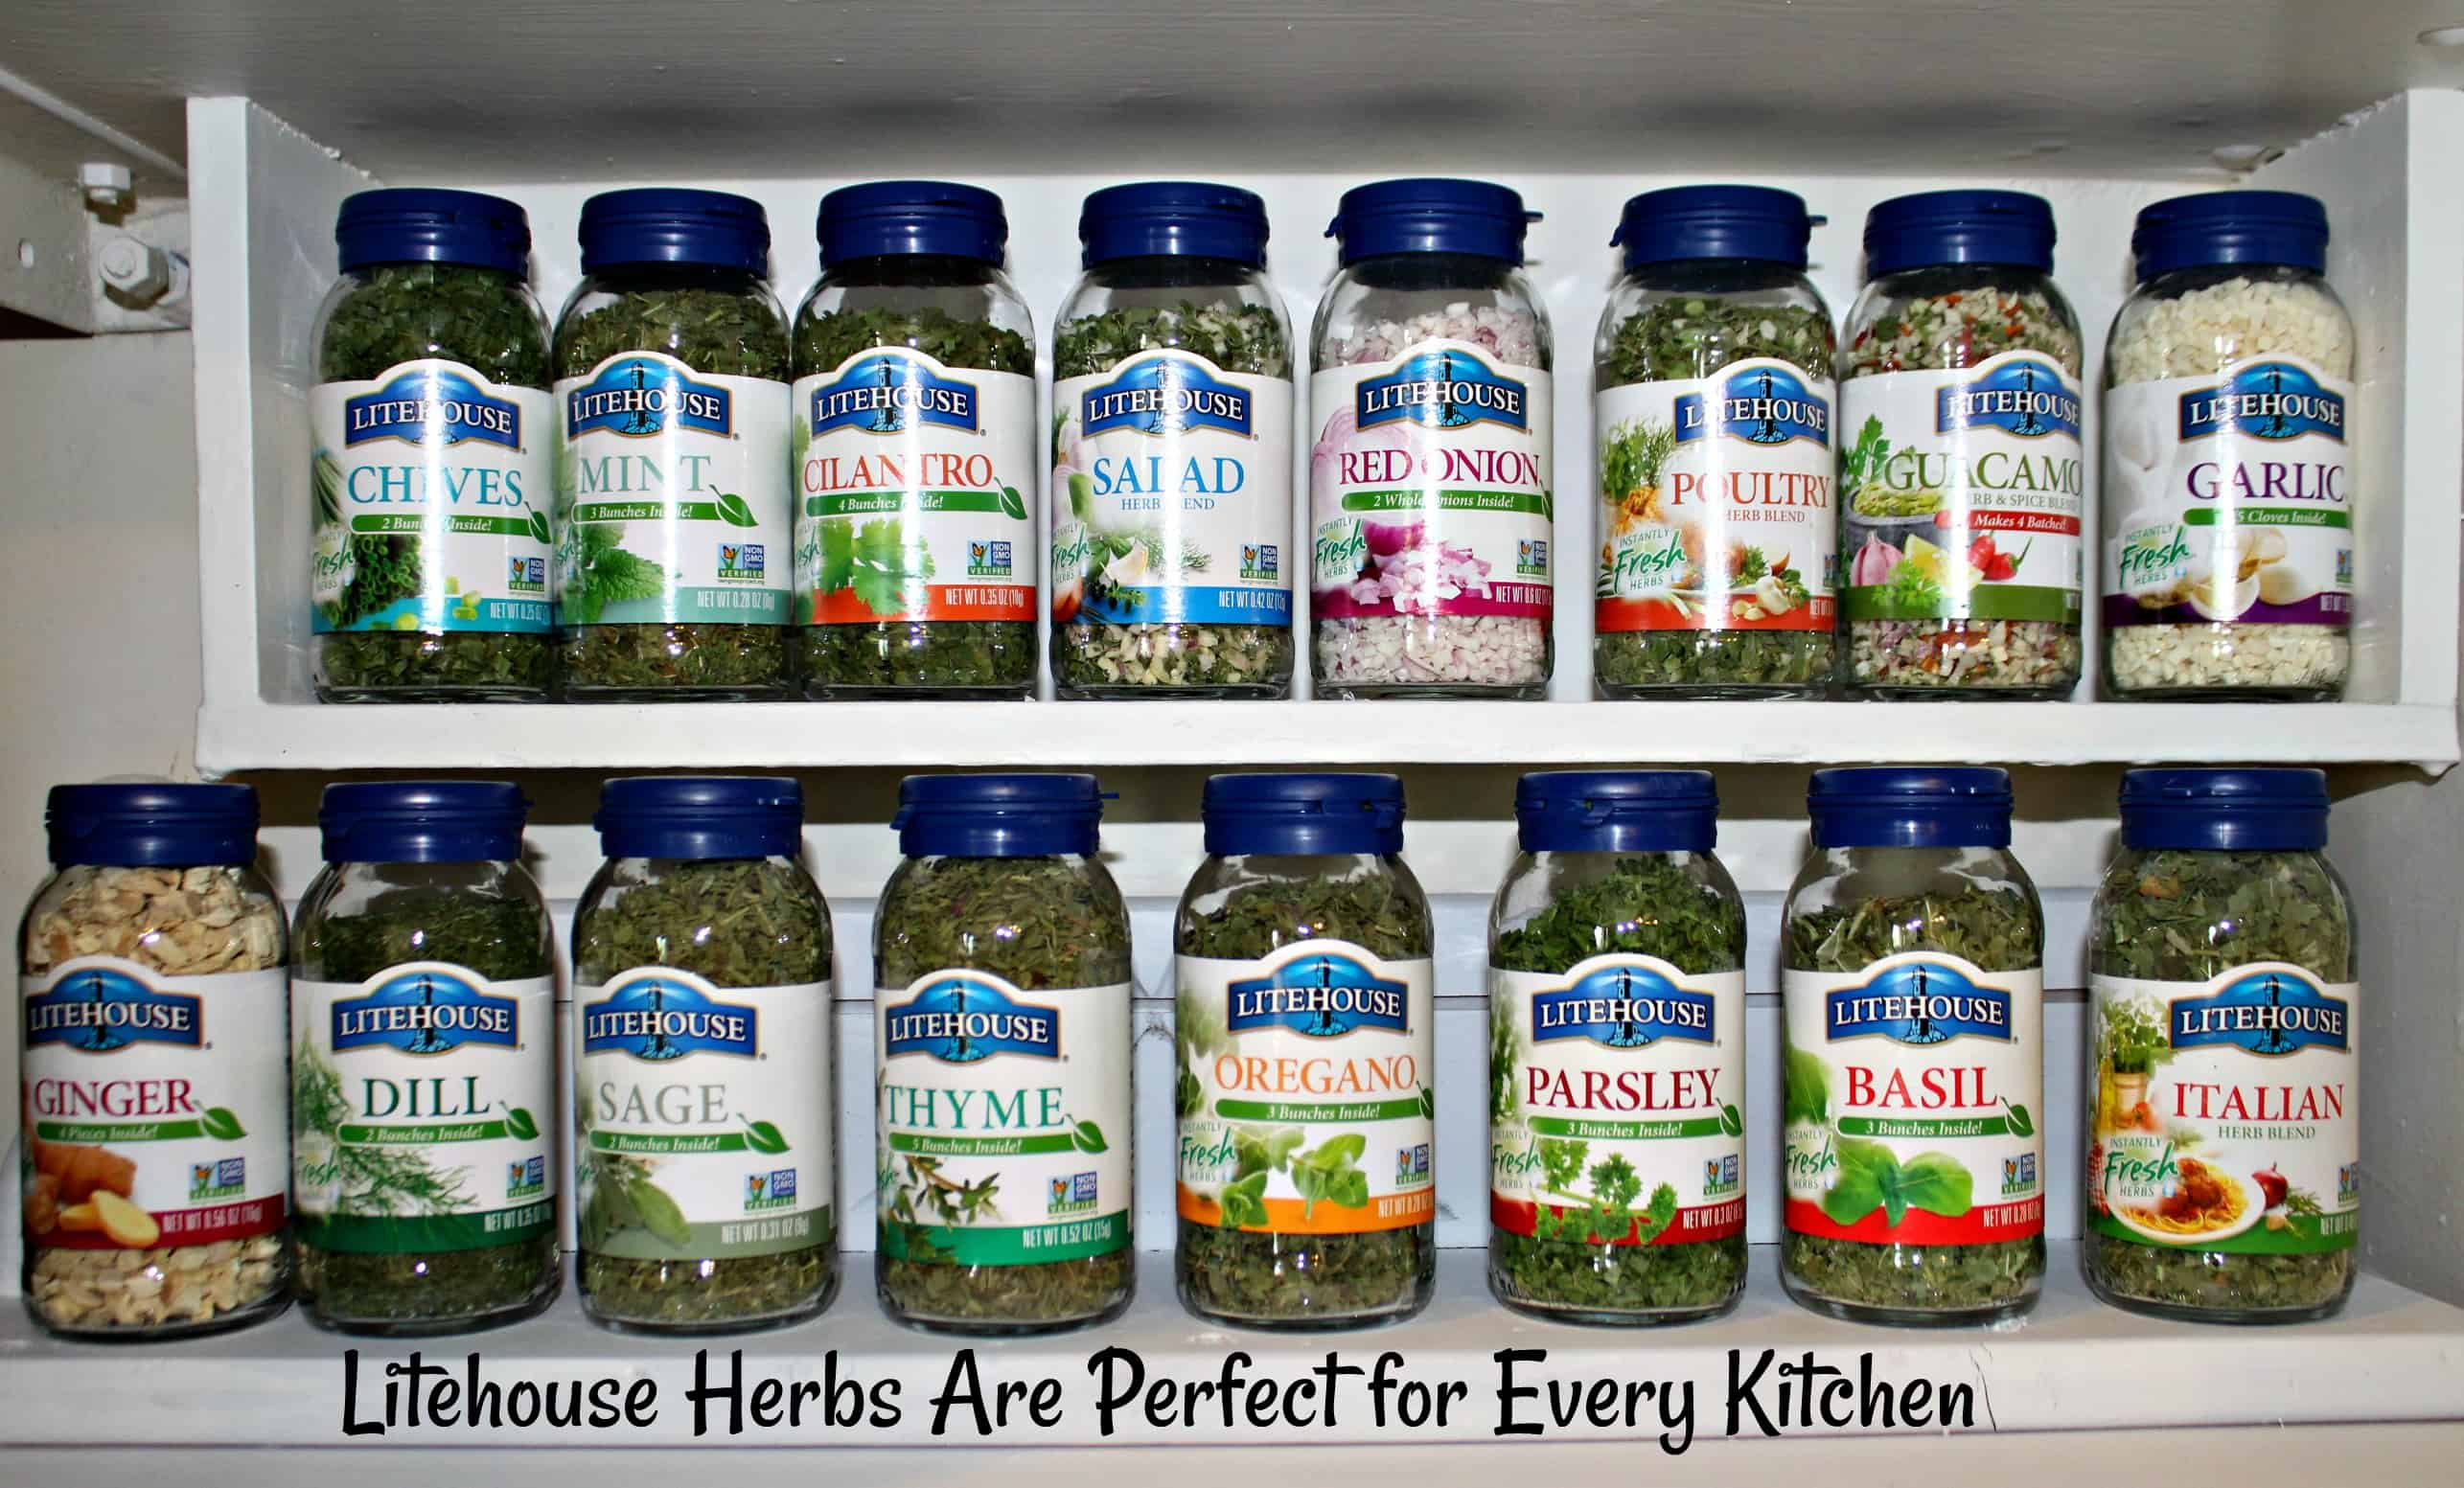 Litehouse Herbs are perfect for every kitchen